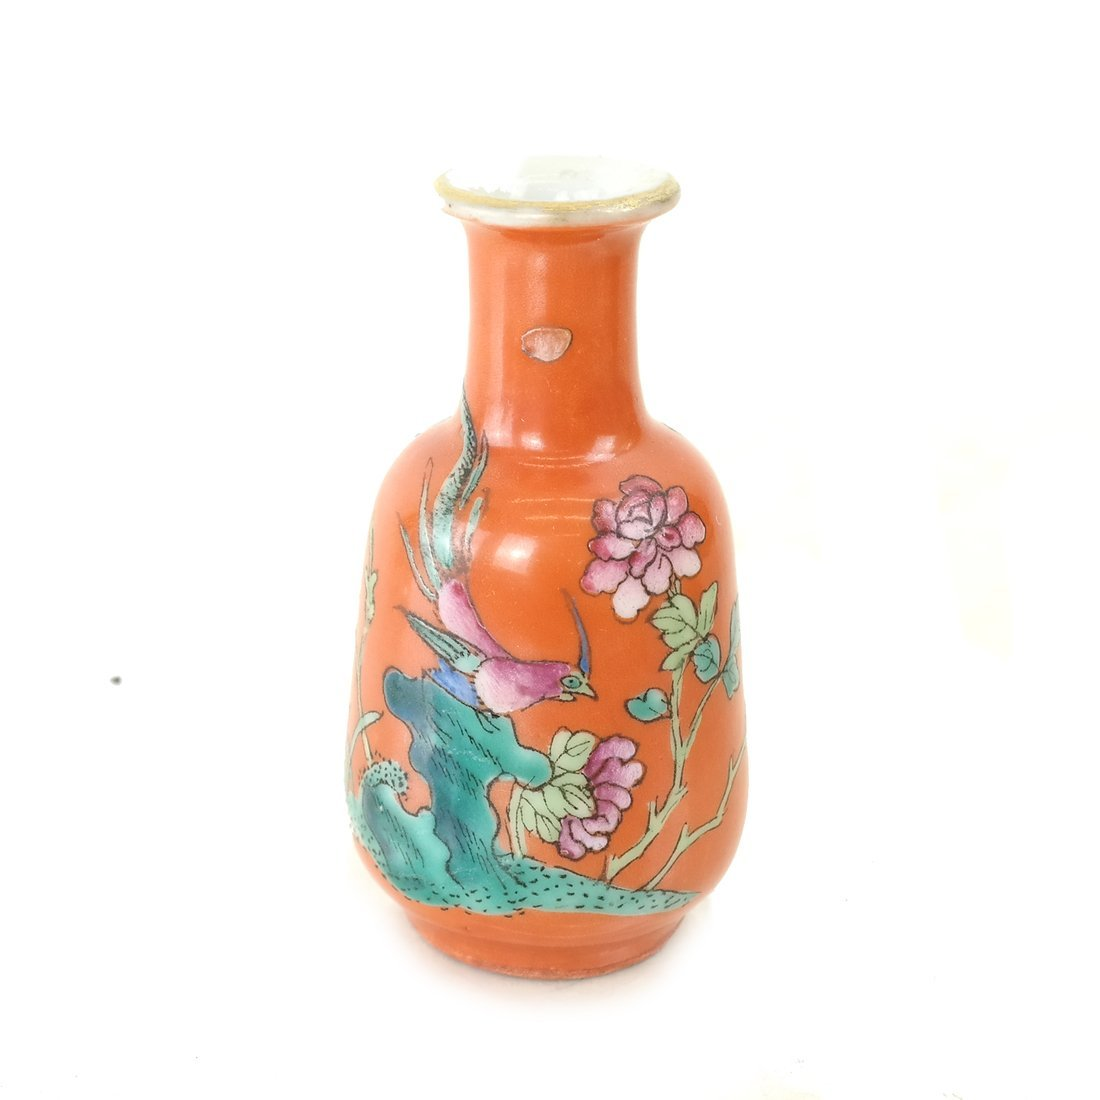 19th Century Diminutive Vase